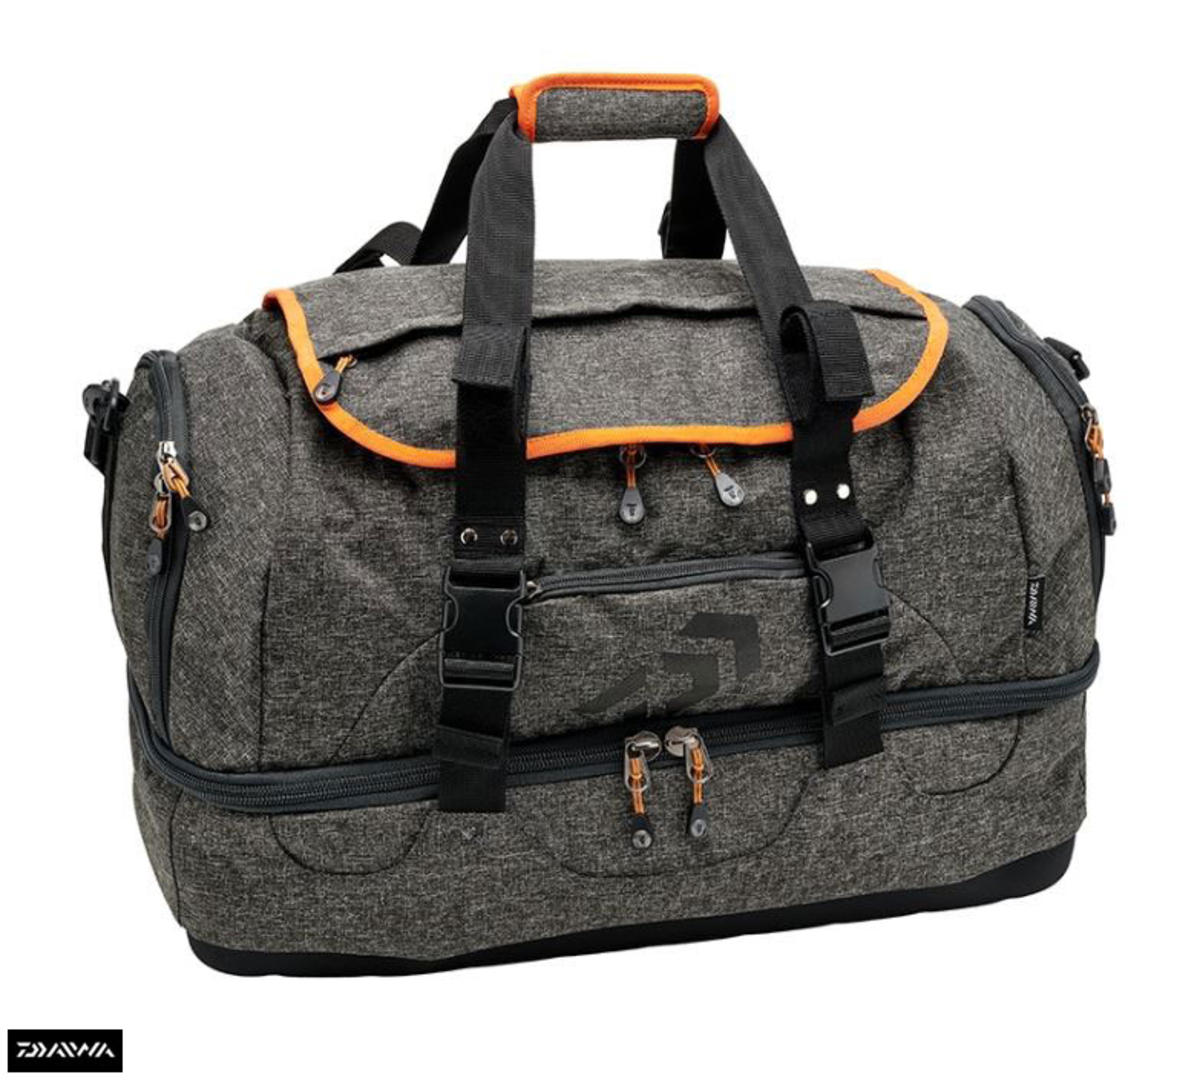 New Daiwa Duffle Bag - DDB1